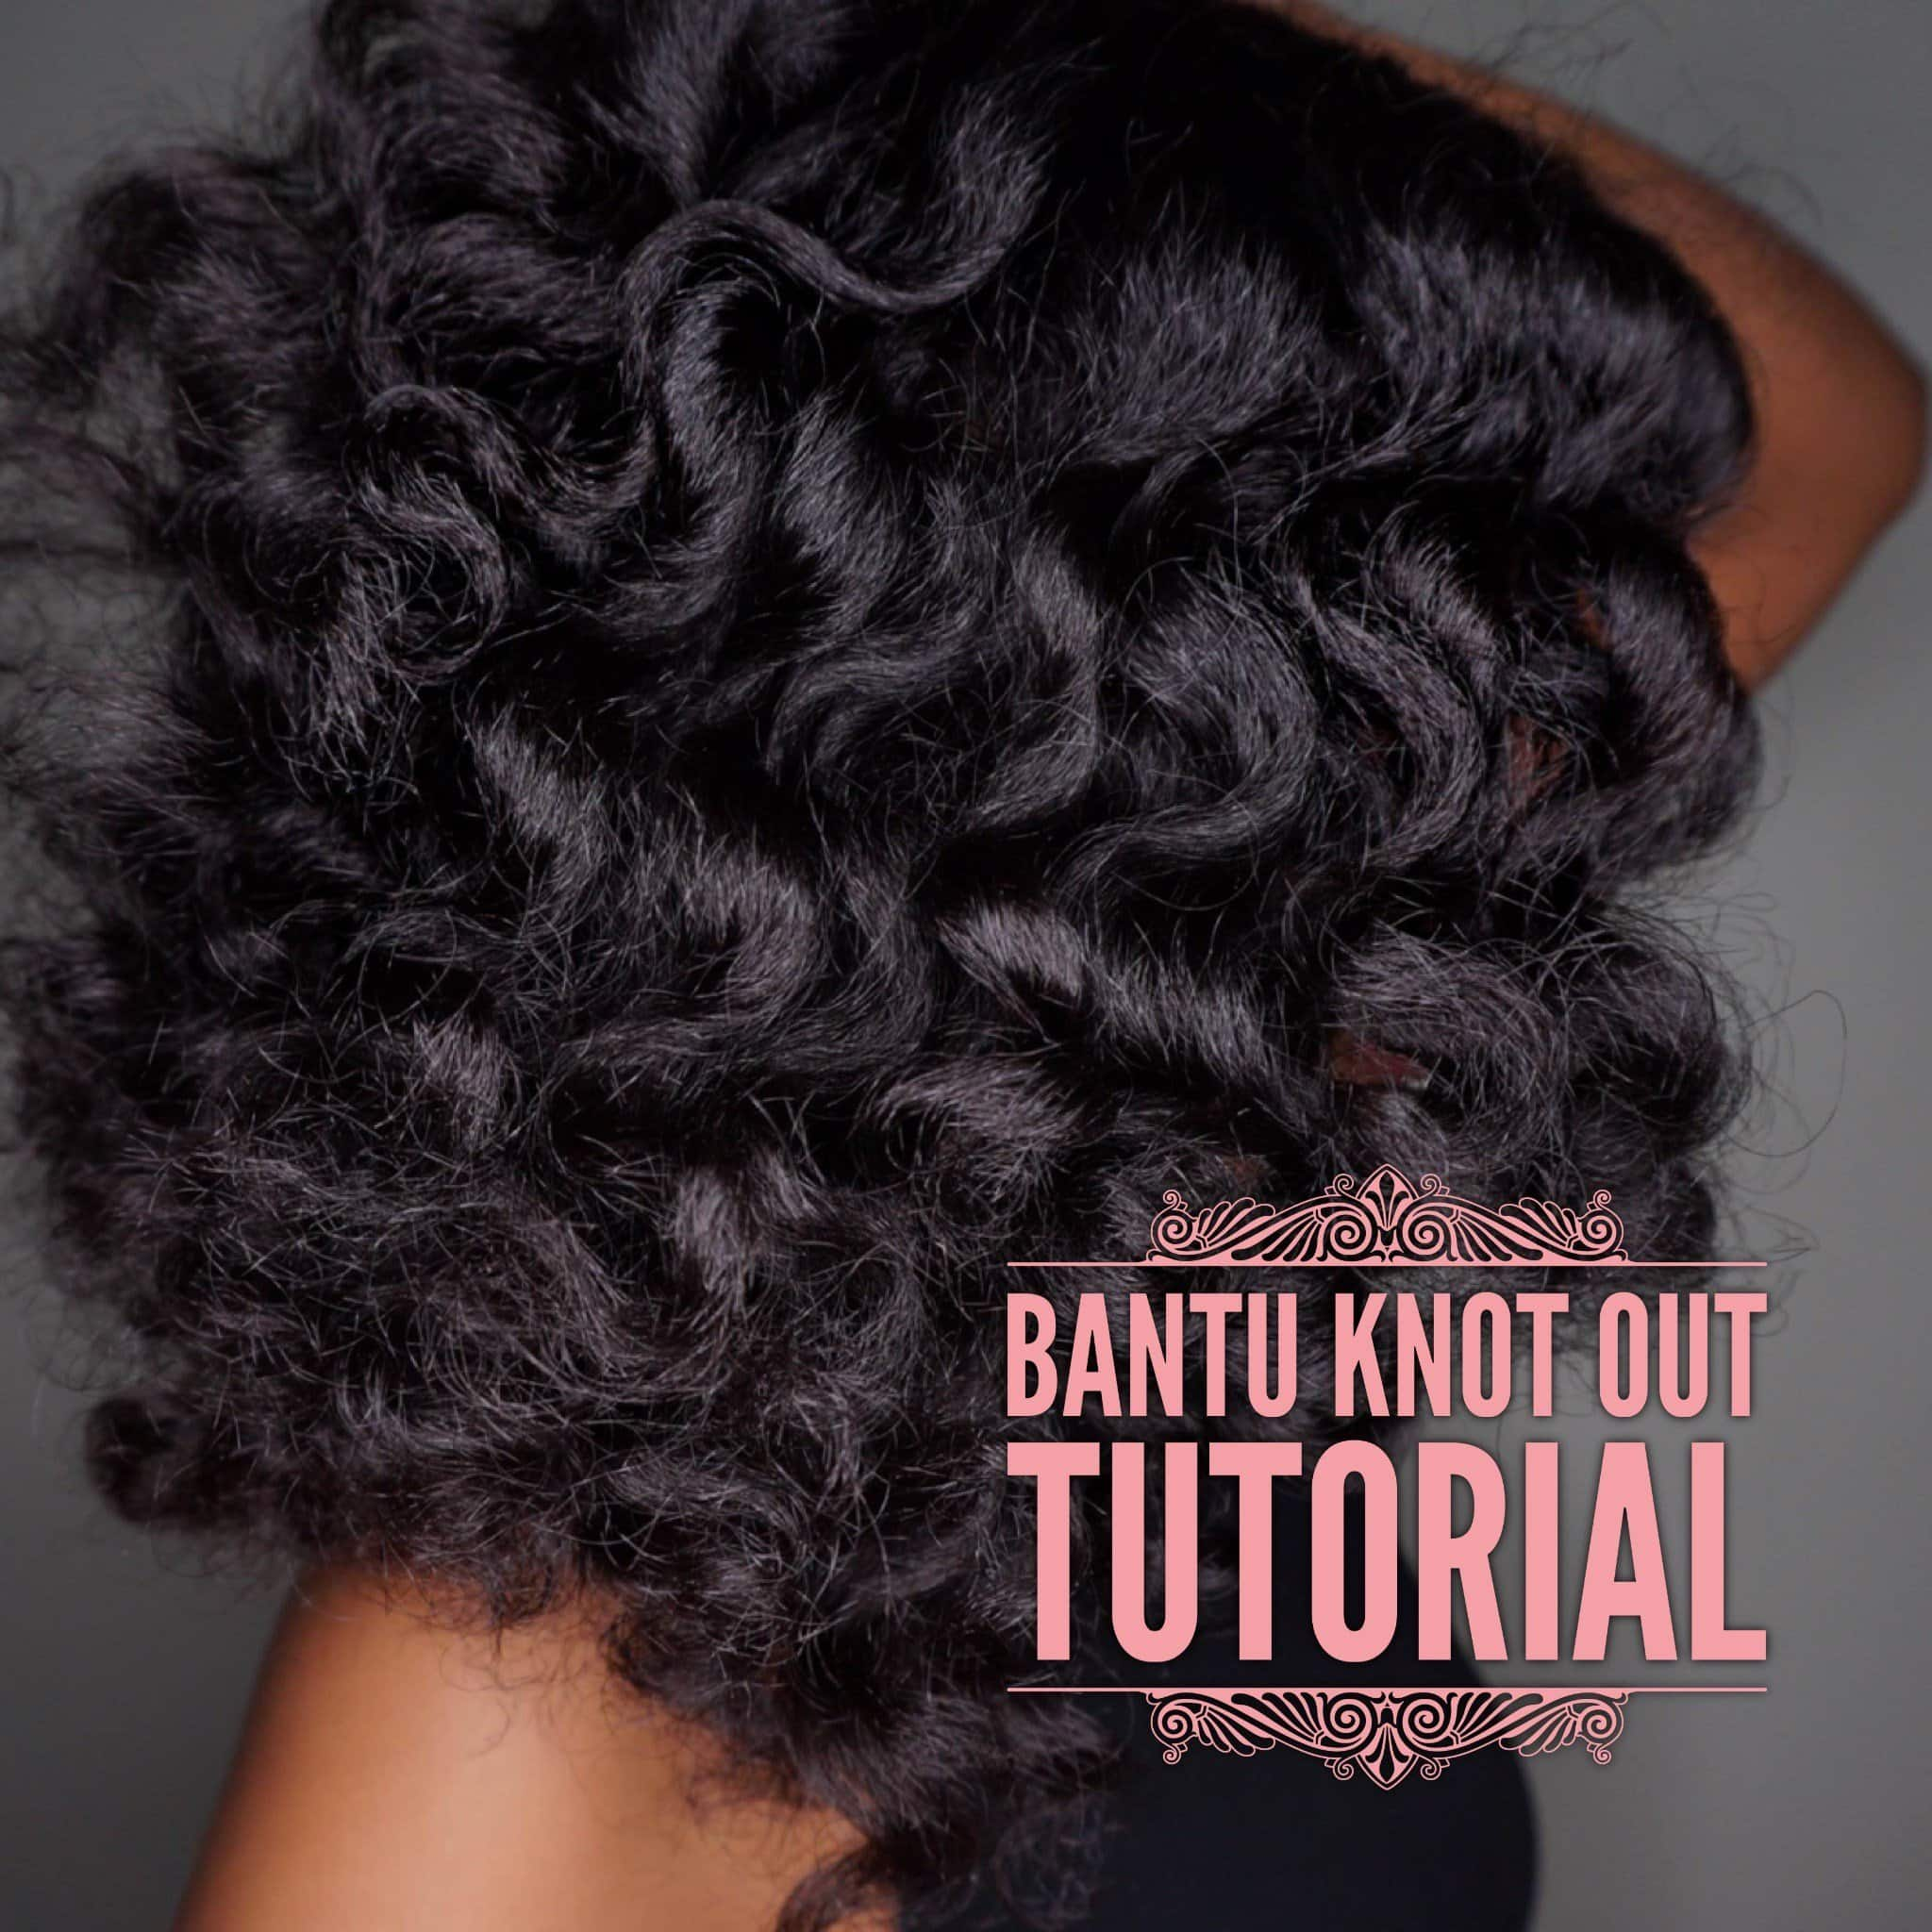 How to: Bantu Knot Out